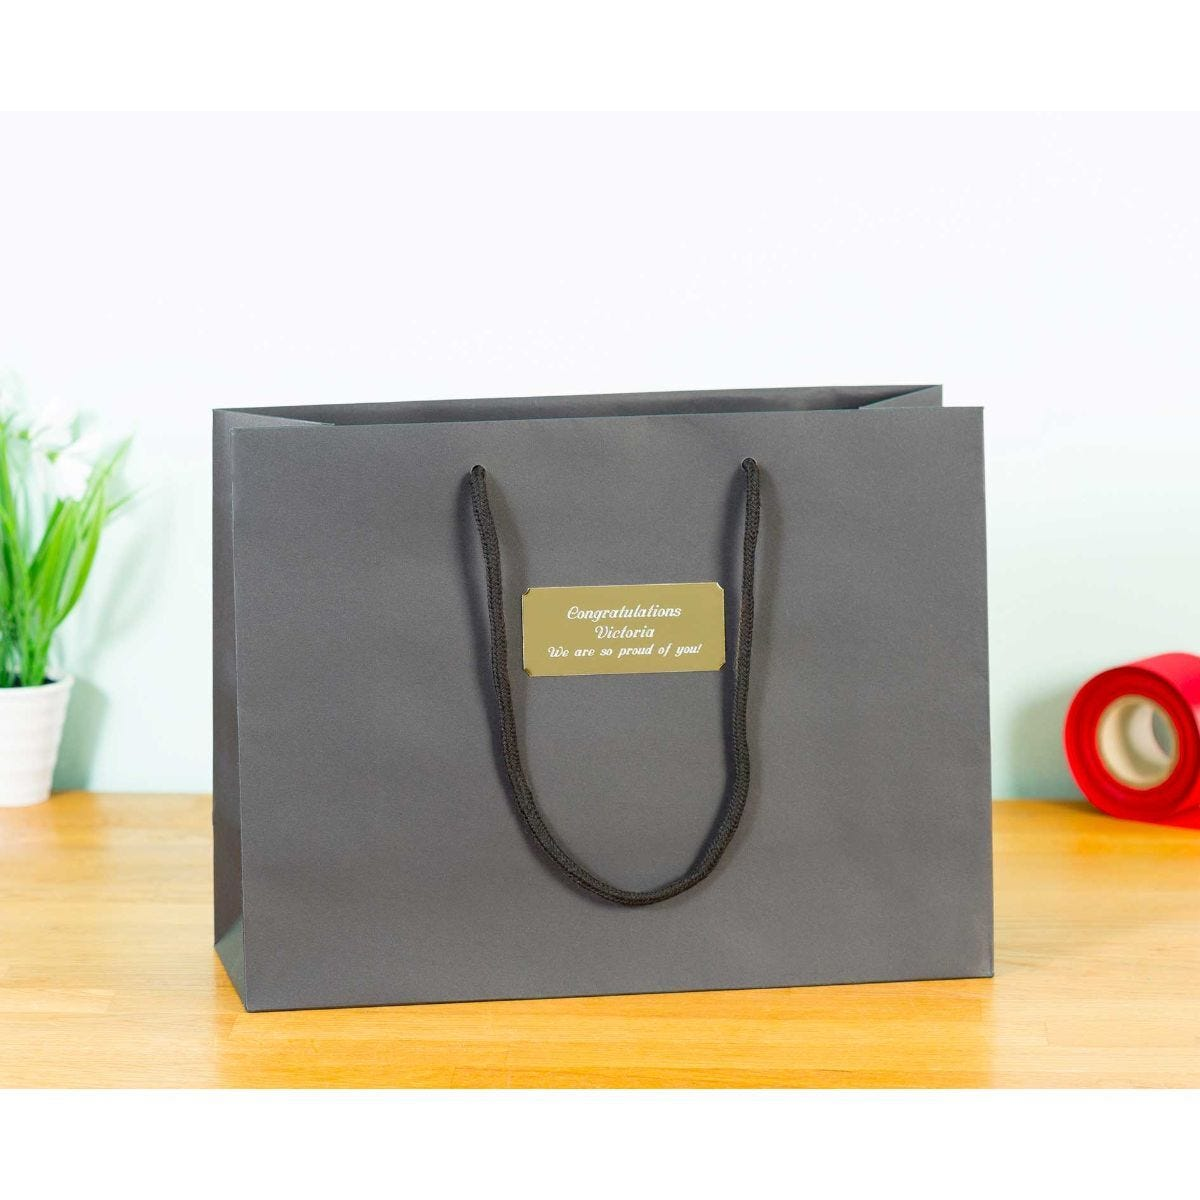 Personalised Luxury Large Black Gift Bag with Engraved Gold Plate